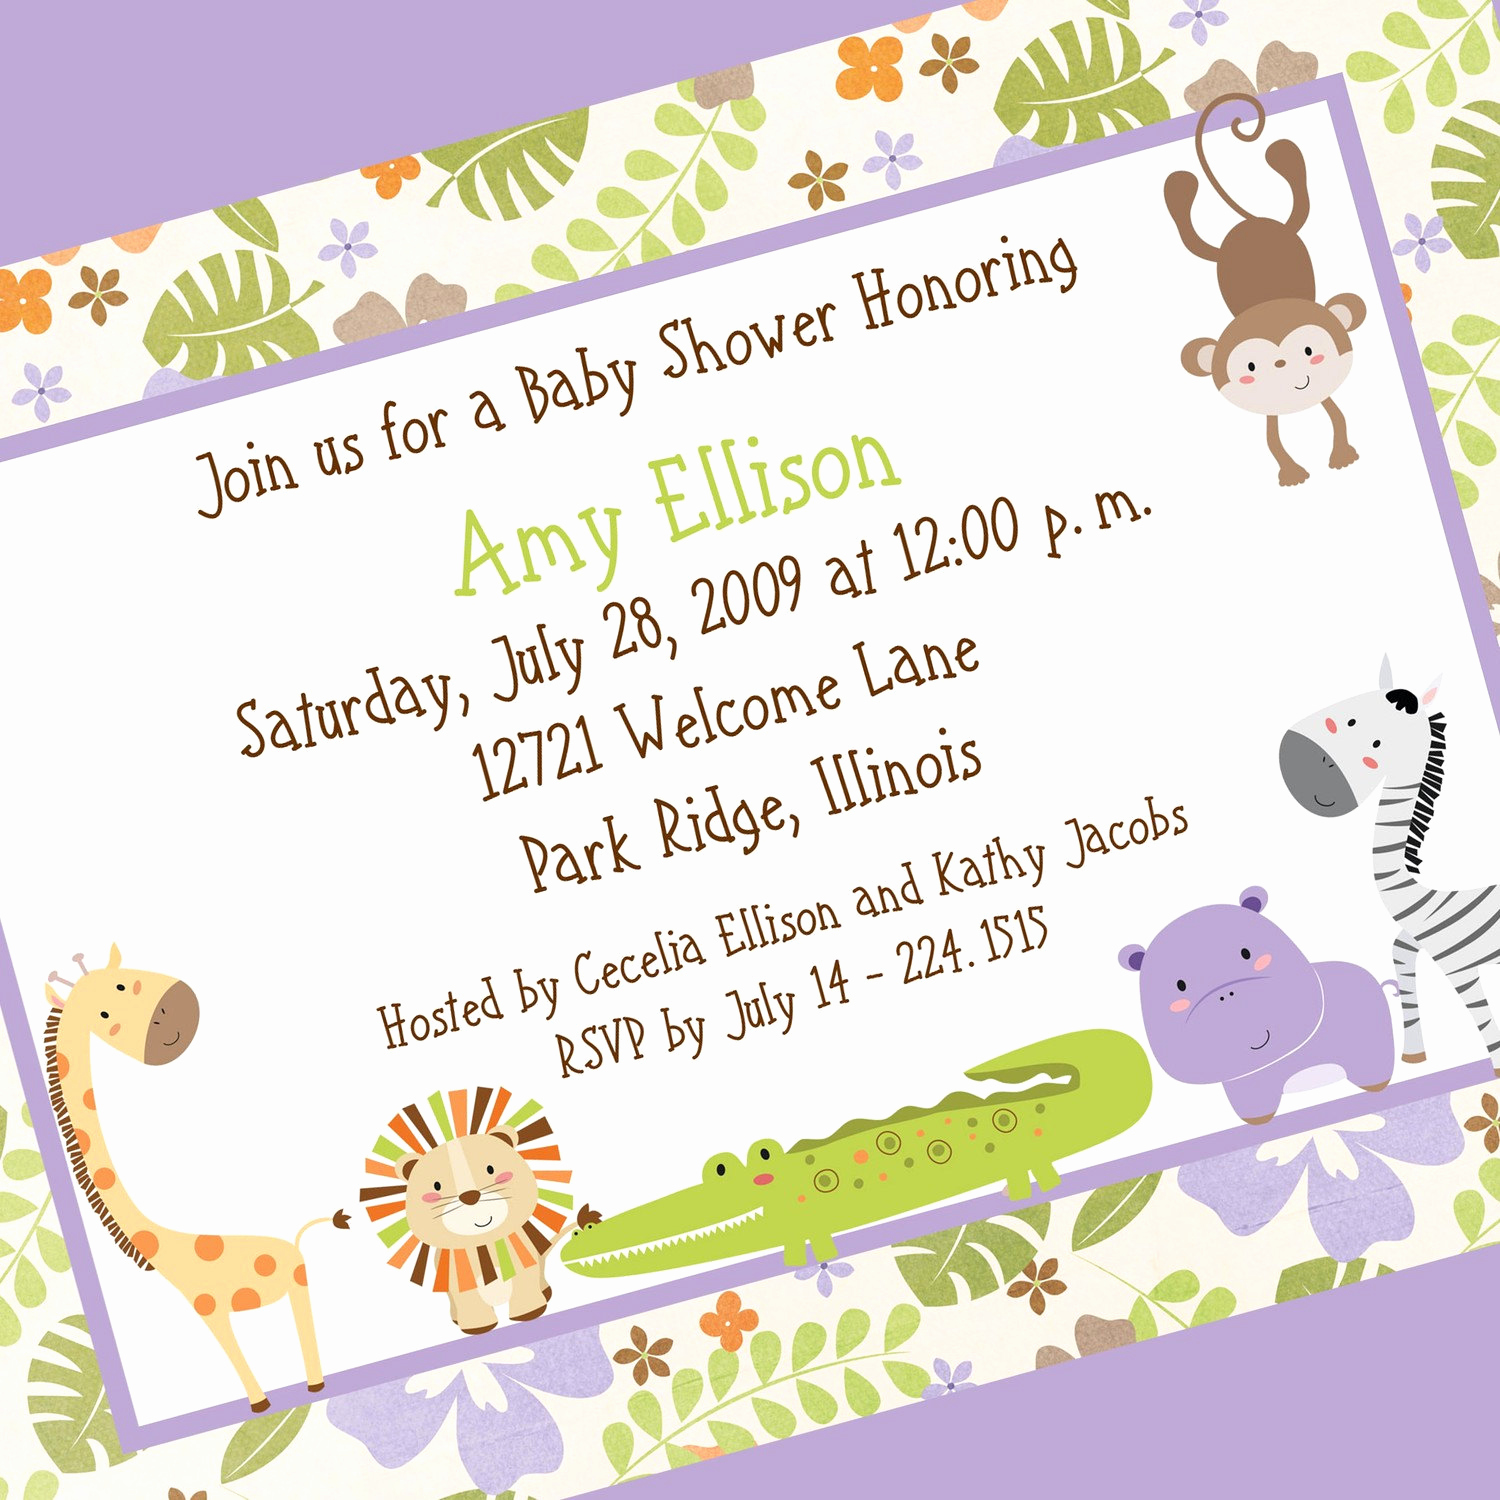 Baby Shower Invitation Pics Best Of Floral Jungle Baby Shower Invitation Printable by